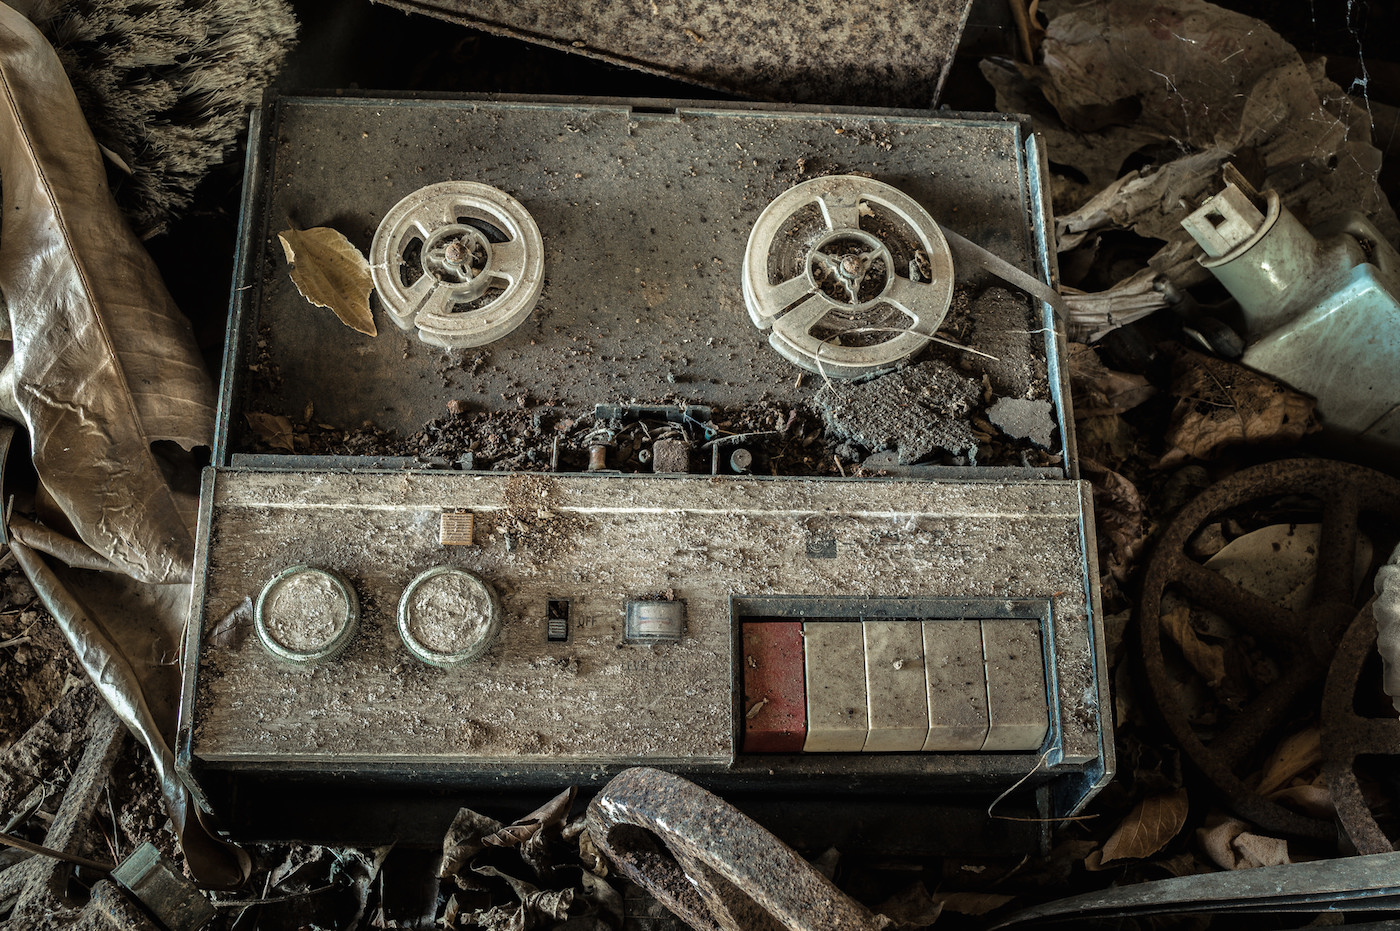 A reel to reel tape player and recorder. Credit: darkday via Flickr.